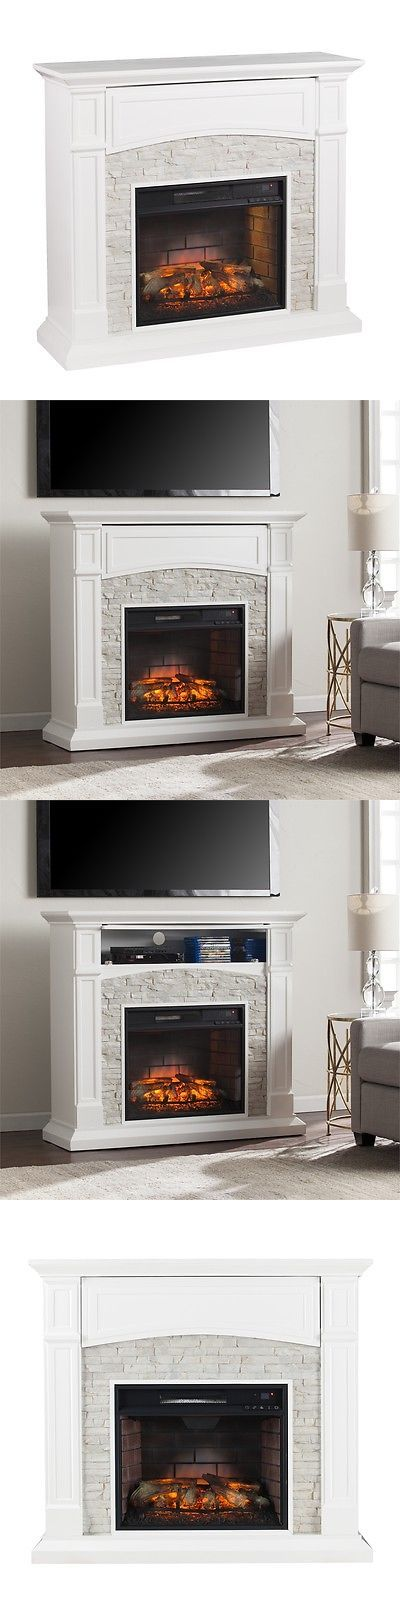 Other Handcrafted Home Accents 160657: Seneca Infrared Electric Media Fireplace -> BUY IT NOW ONLY: $585.44 on eBay!